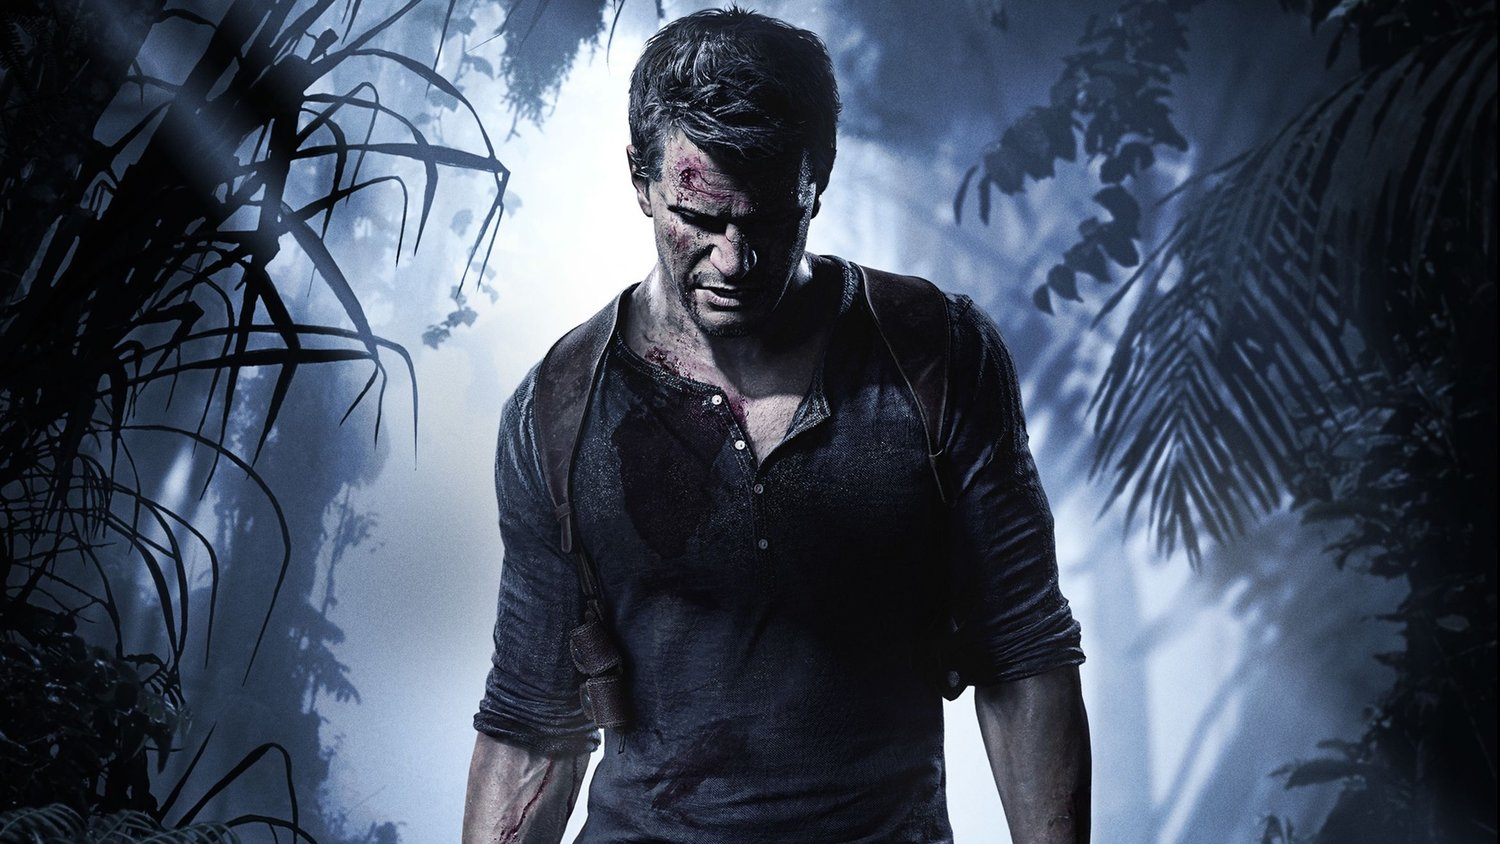 Joe Carnahan Says the UNCHARTED Script Is Rated R and Has